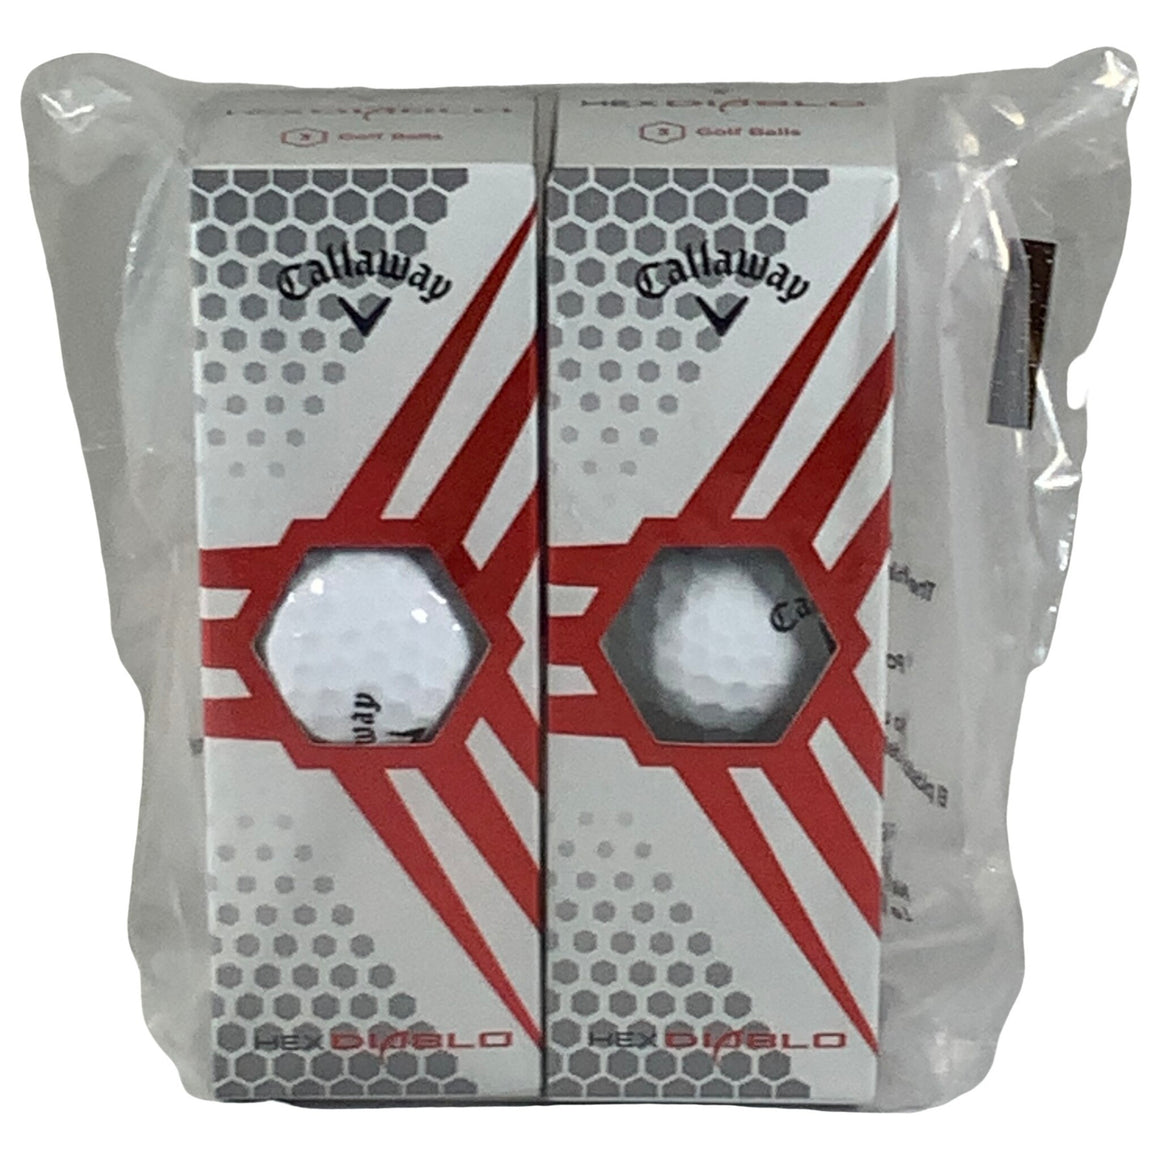 Hex Diablo Golf Balls, White - 3 Balls - 2 Packs - Callaway